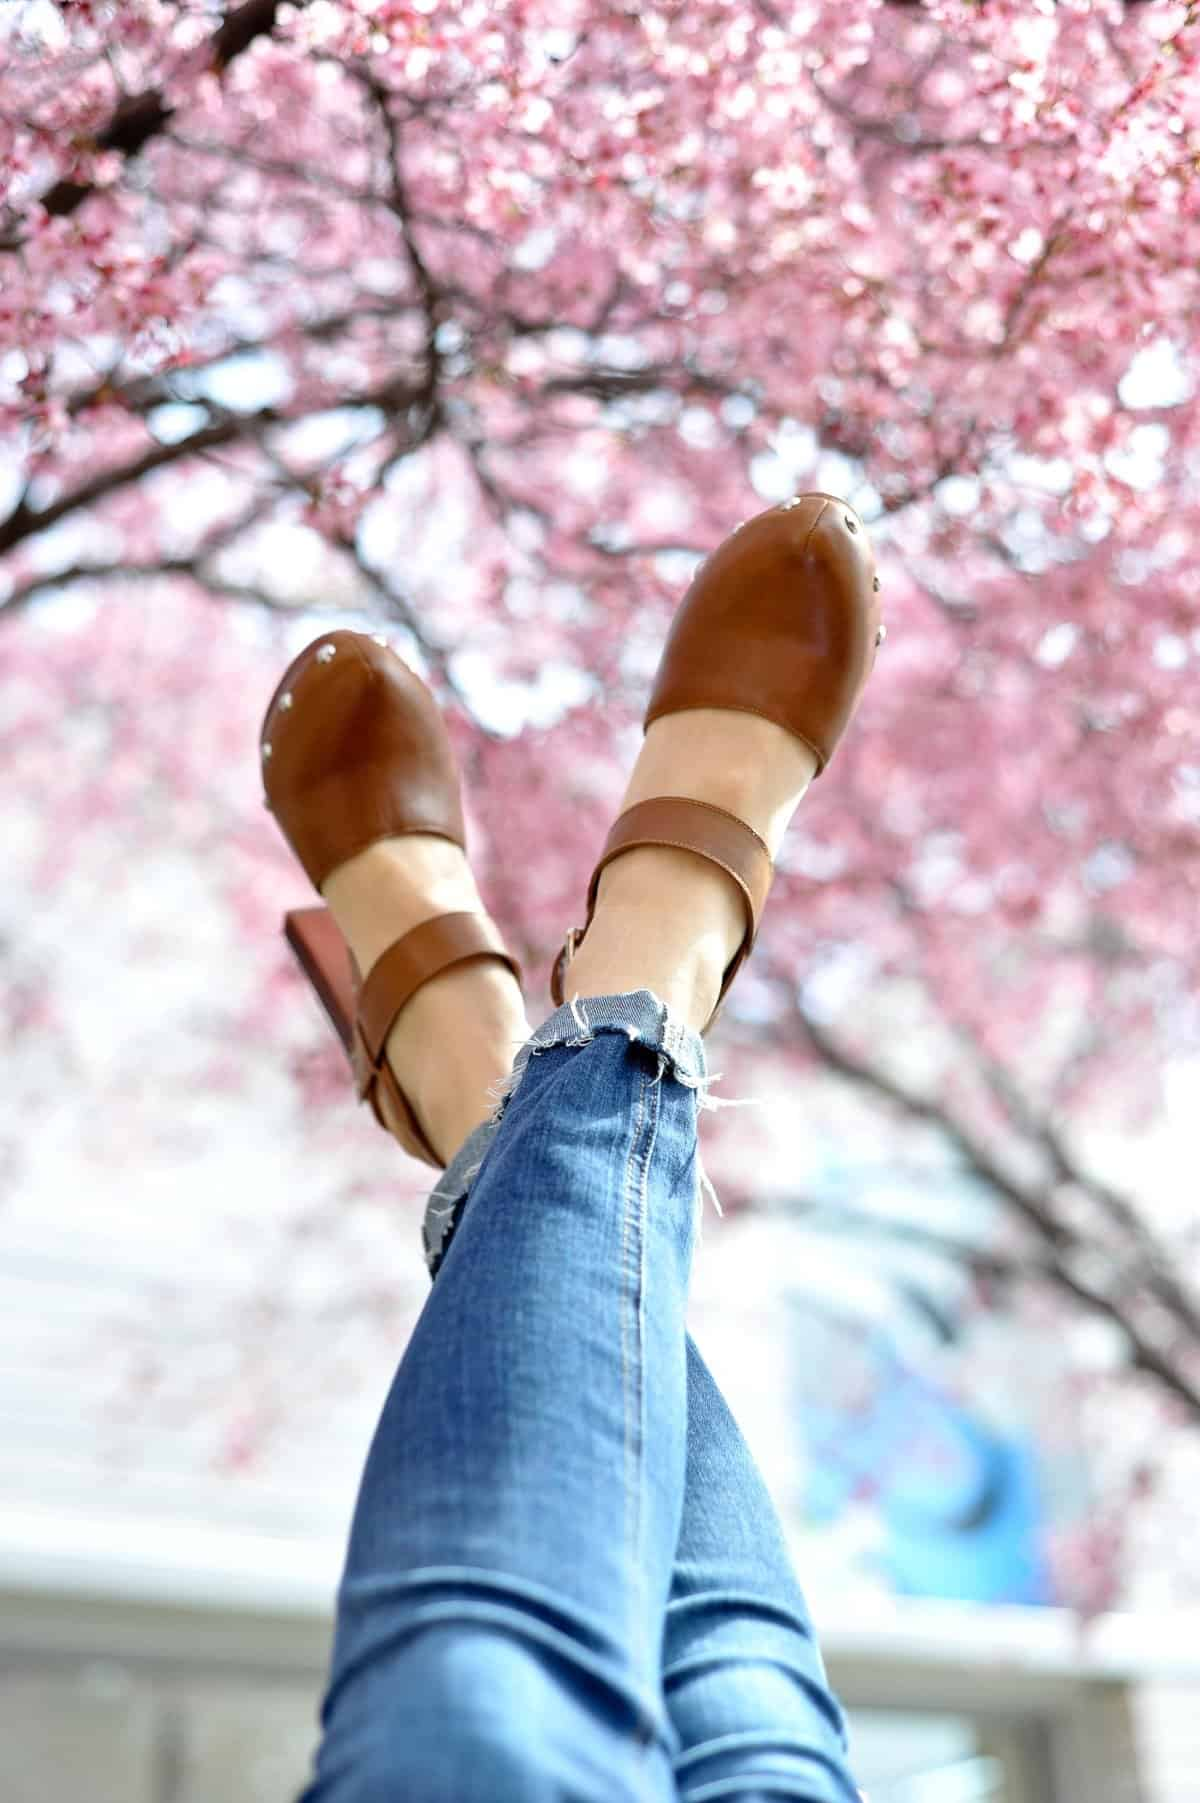 Vince Camuto Elric Shoe for spring - My Style Vita - @mystylevita - 21